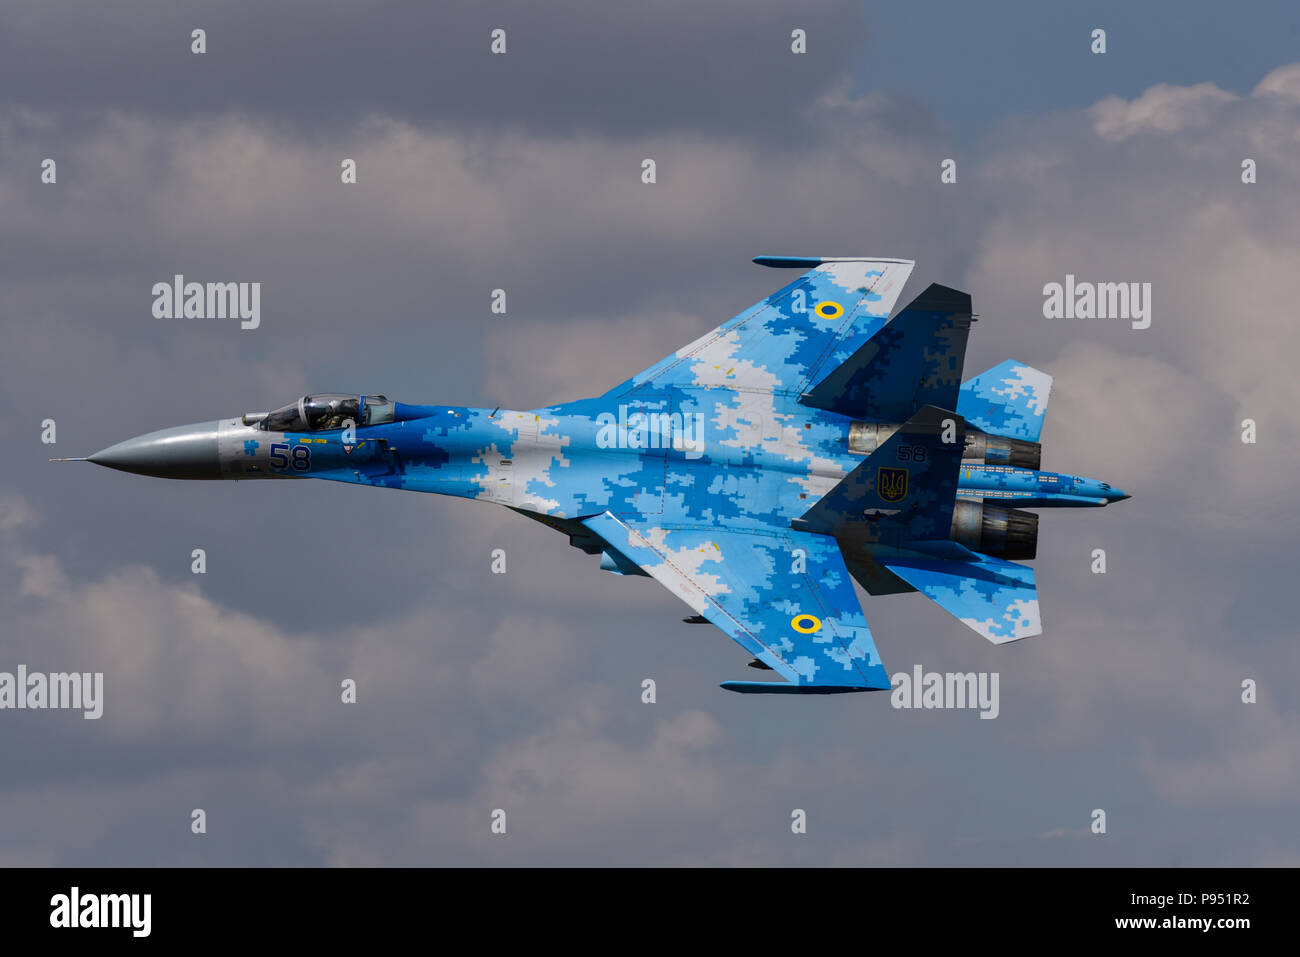 Su 27 Flanker Stock Photos & Su 27 Flanker Stock Images ...